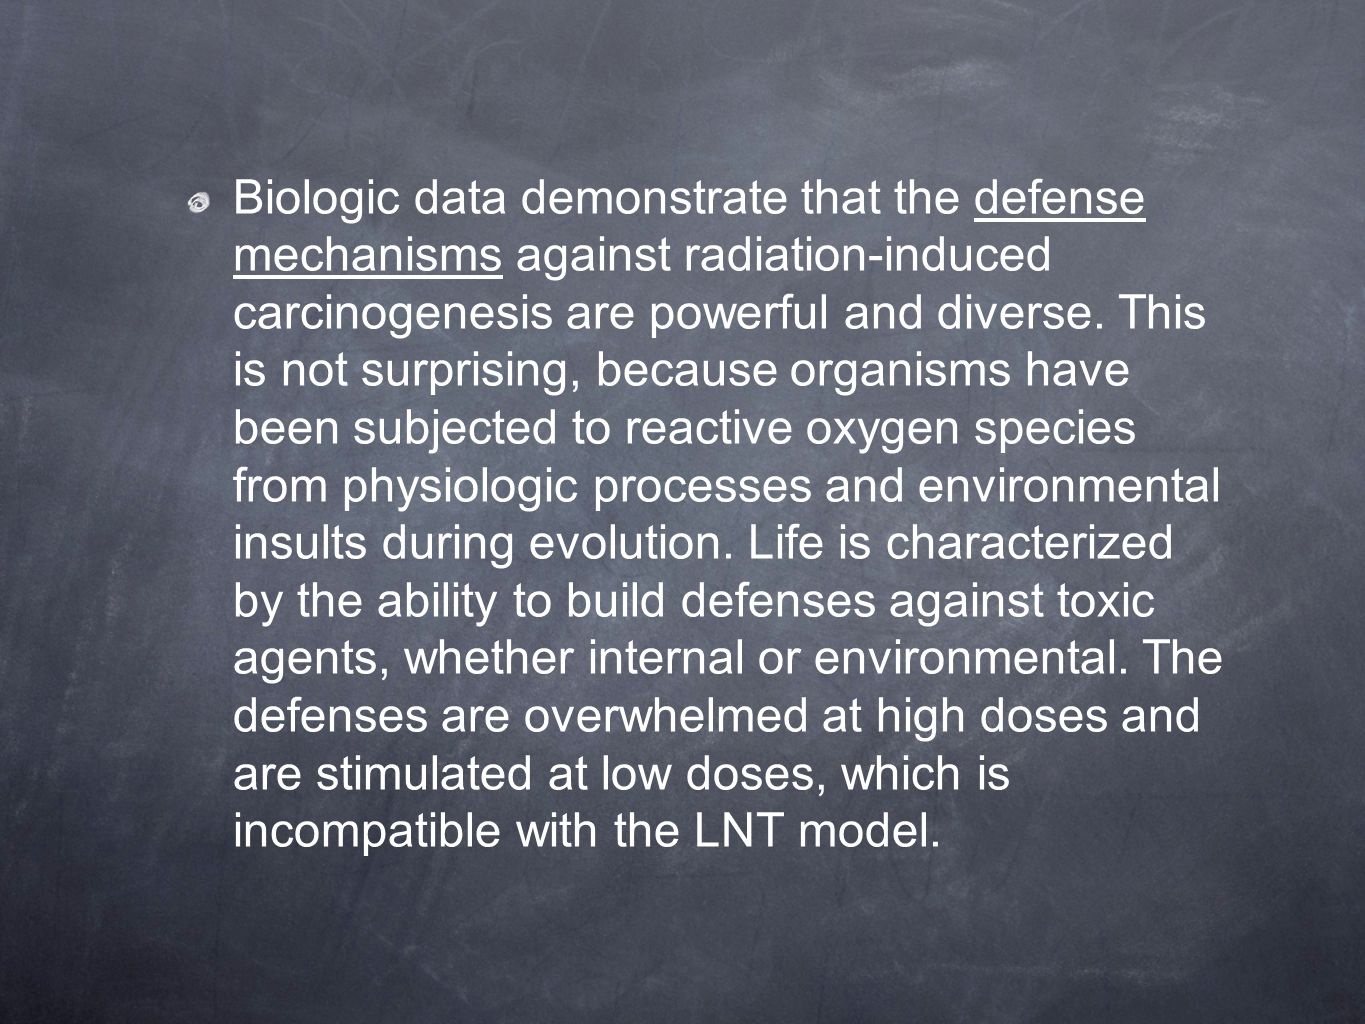 Biologic data demonstrate that the defense mechanisms against radiation-induced carcinogenesis are powerful and diverse.